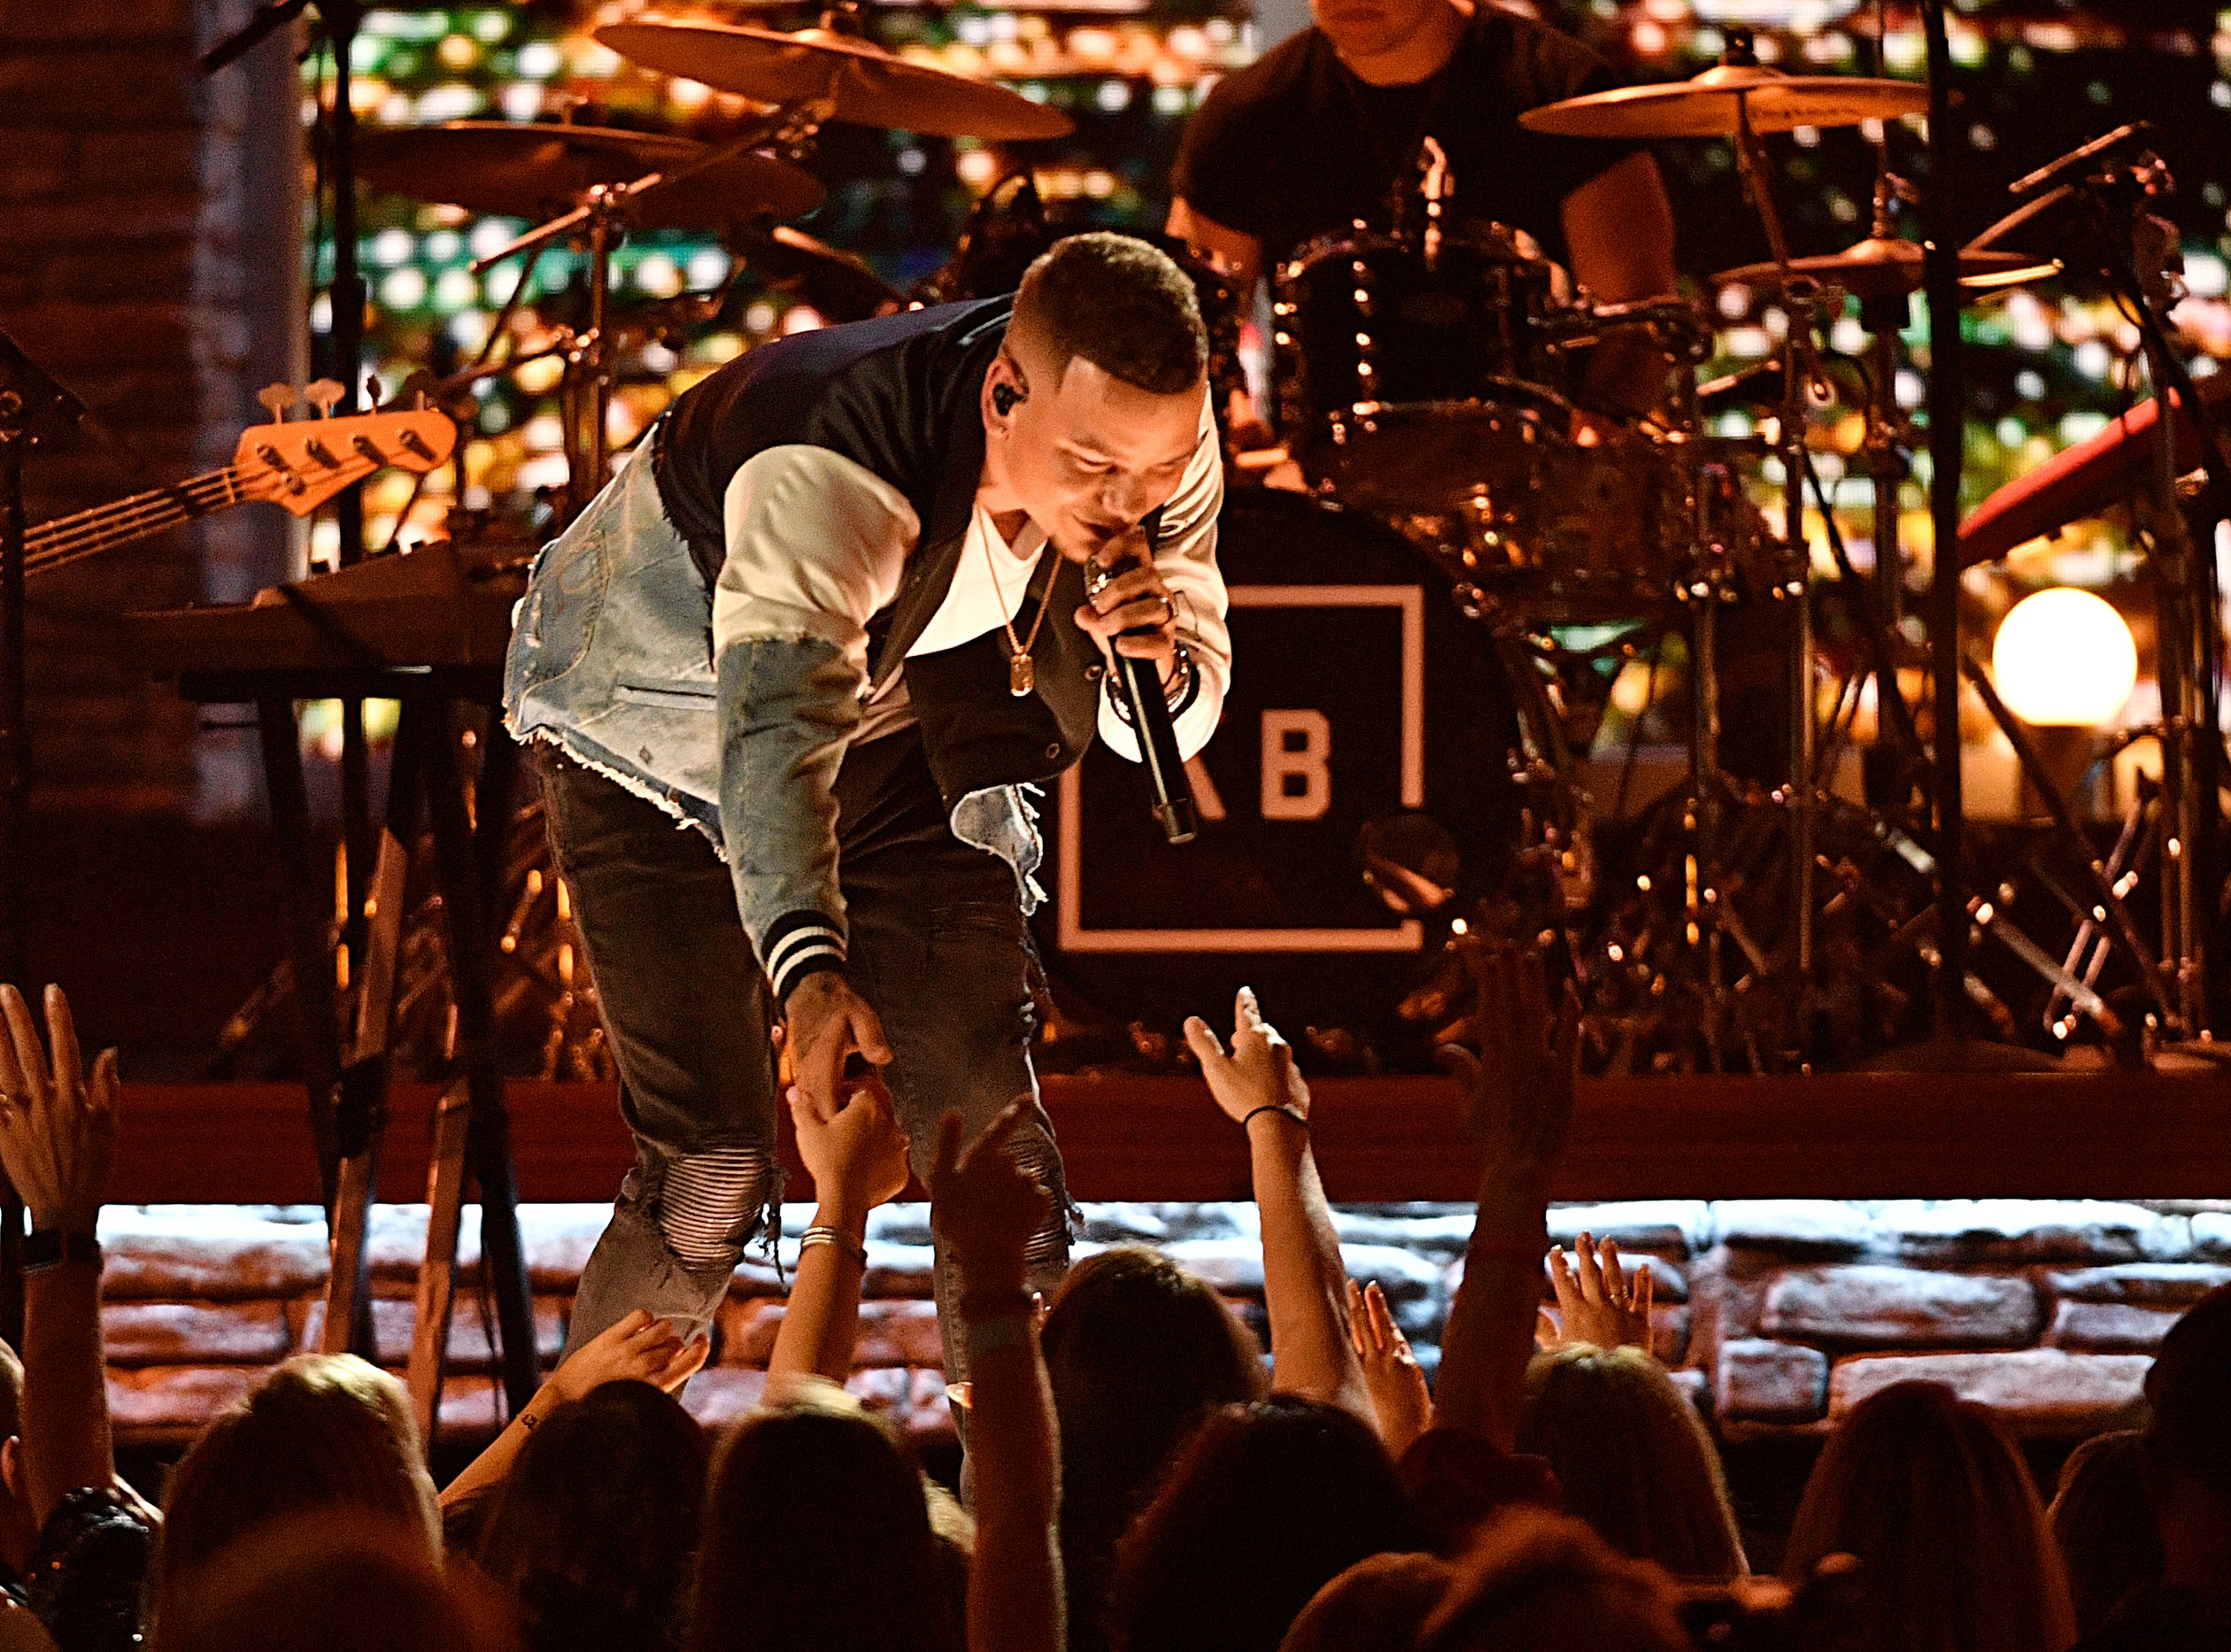 Kane Brown performs during the 54TH Academy of Country Music Awards Sunday, April 7, 2019, in Las Vegas, Nev.